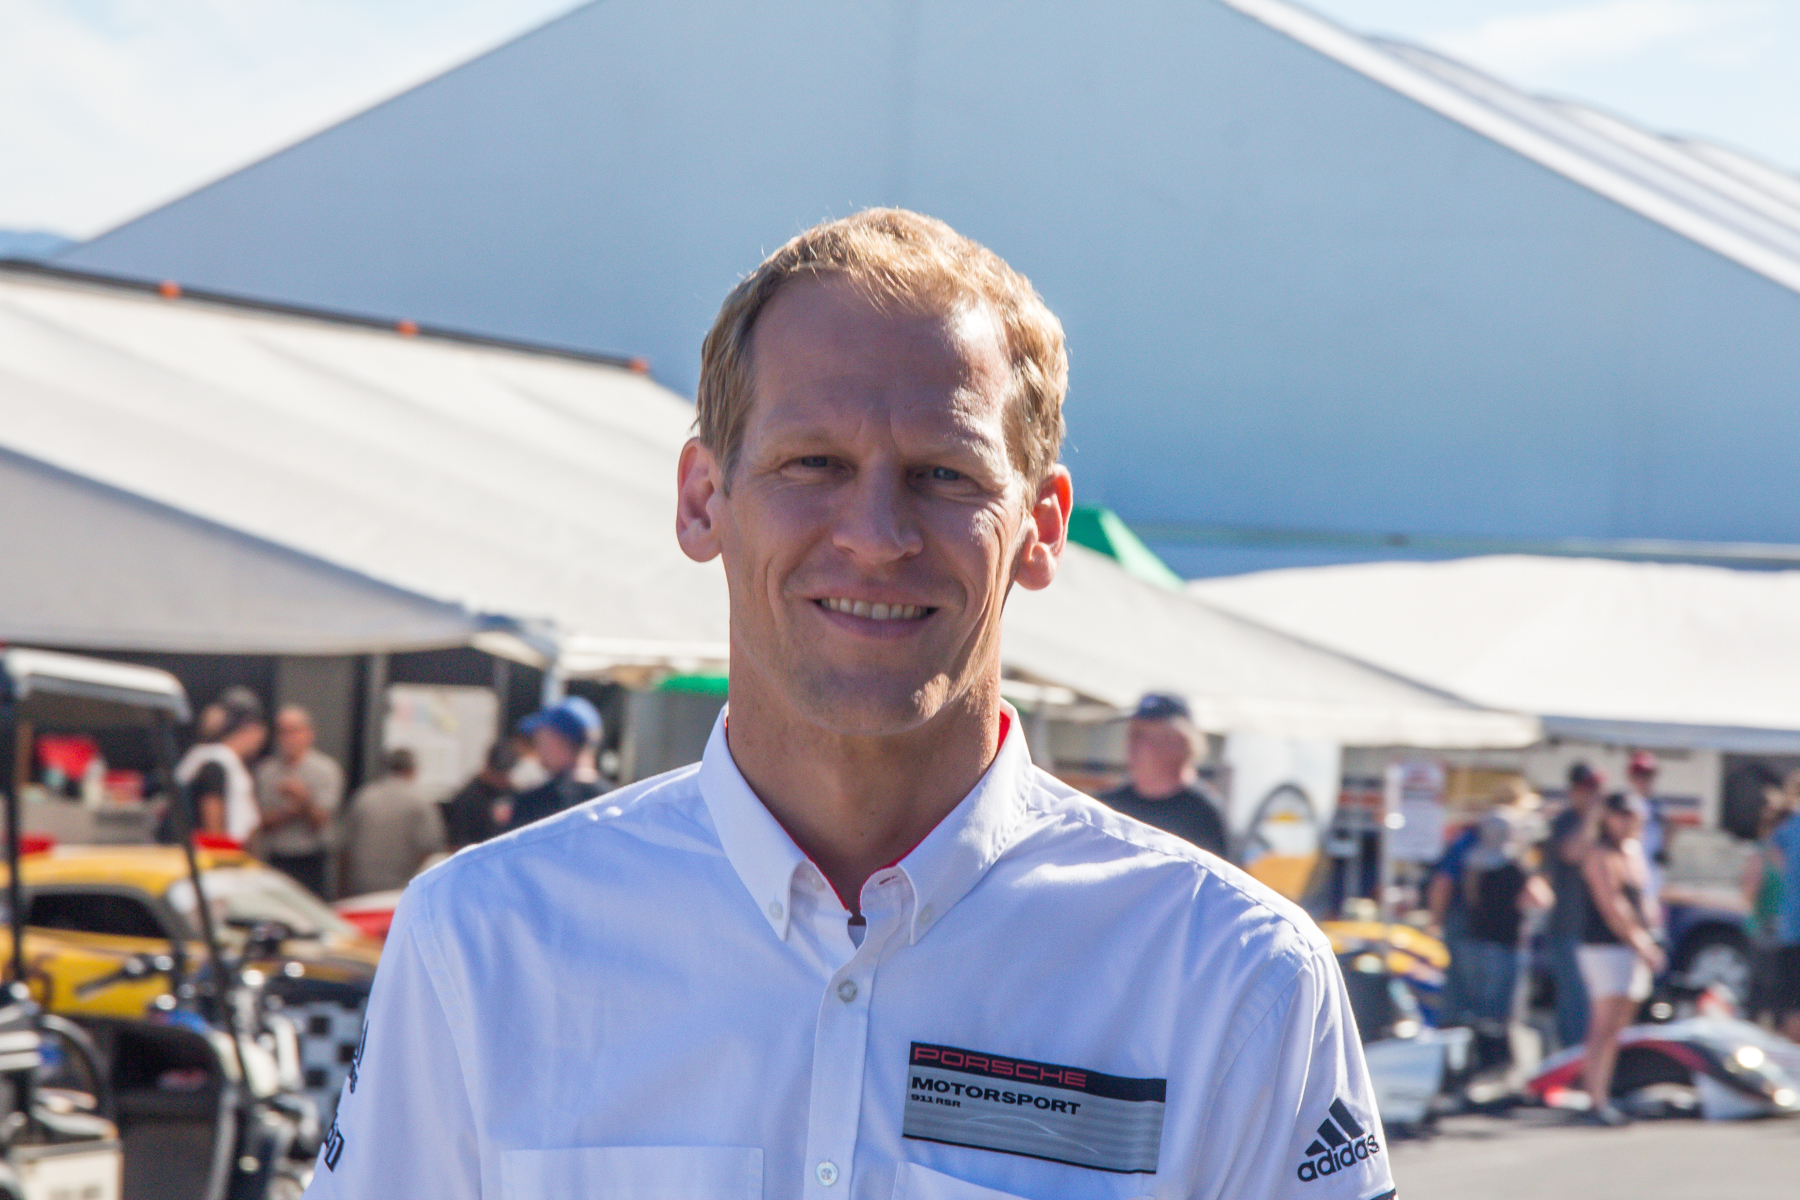 Porsche factory driver Joerg Bergmeister and one of the nicest guys in the world unless you're in his way on track.